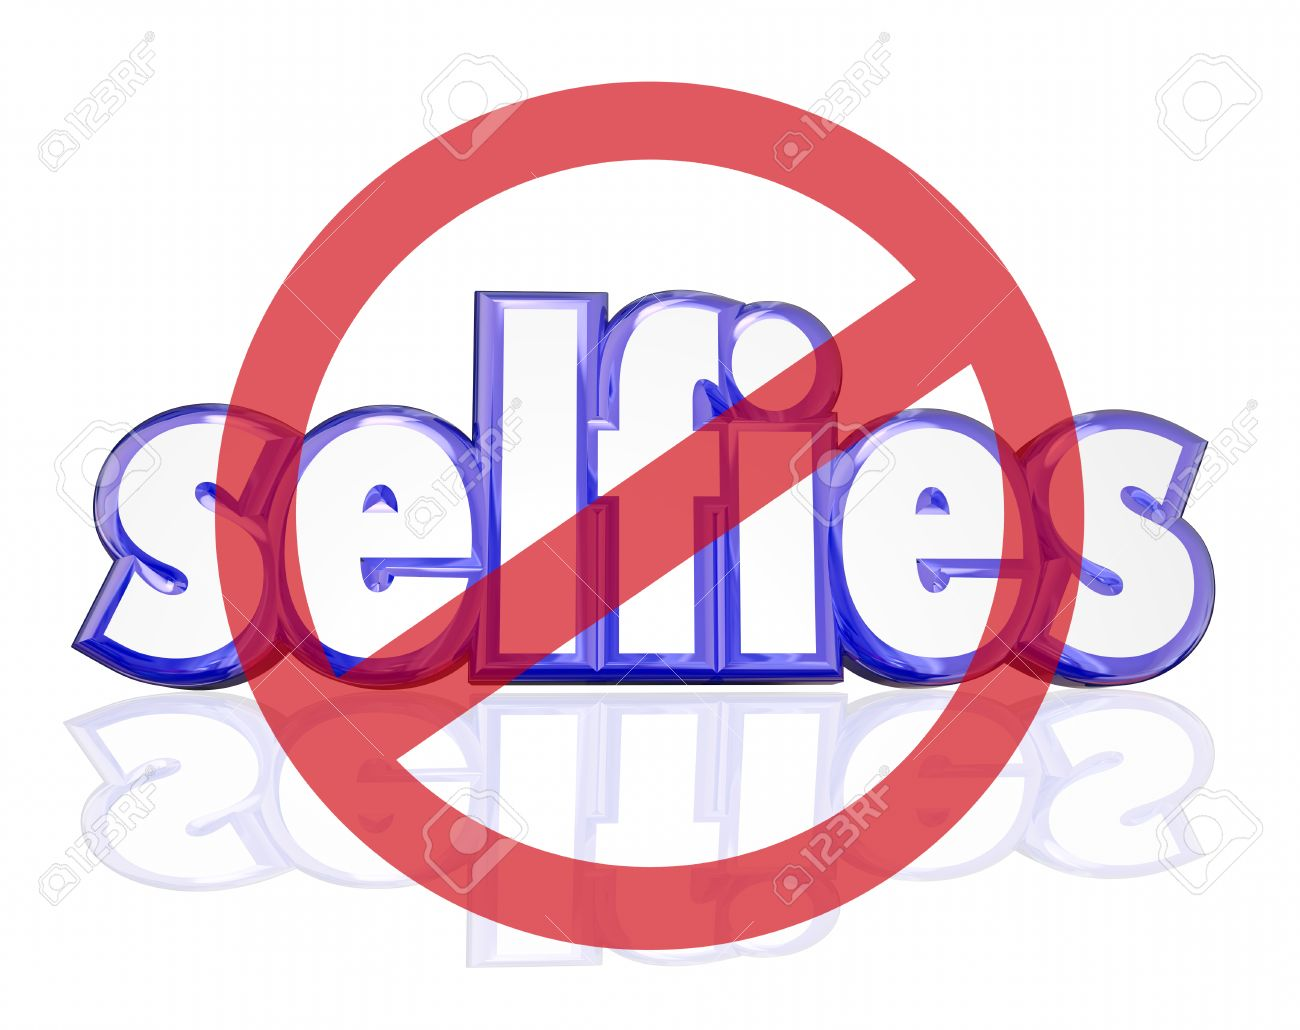 No Selfies Symbol On 3d Letters To Illustrate People Being Annoyed